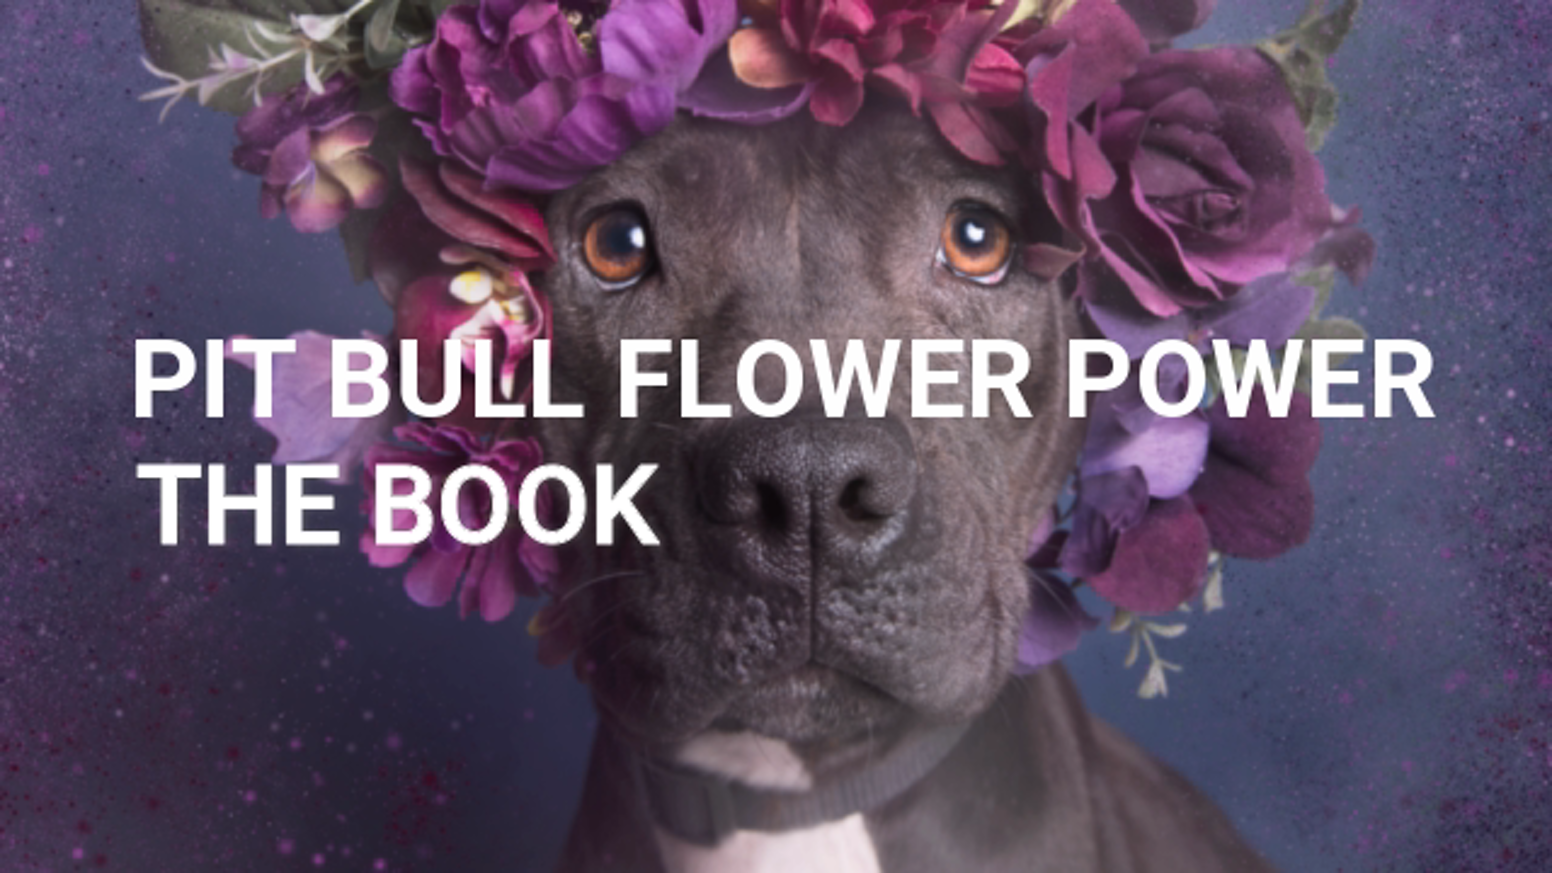 Pit Bull Flower Power: the book is the top crowdfunding project launched today. Pit Bull Flower Power: the book raised over $173181 from 1536 backers. Other top projects include The Planets: Earth Playing Cards [3 of 8], Poverty, Peekapet...